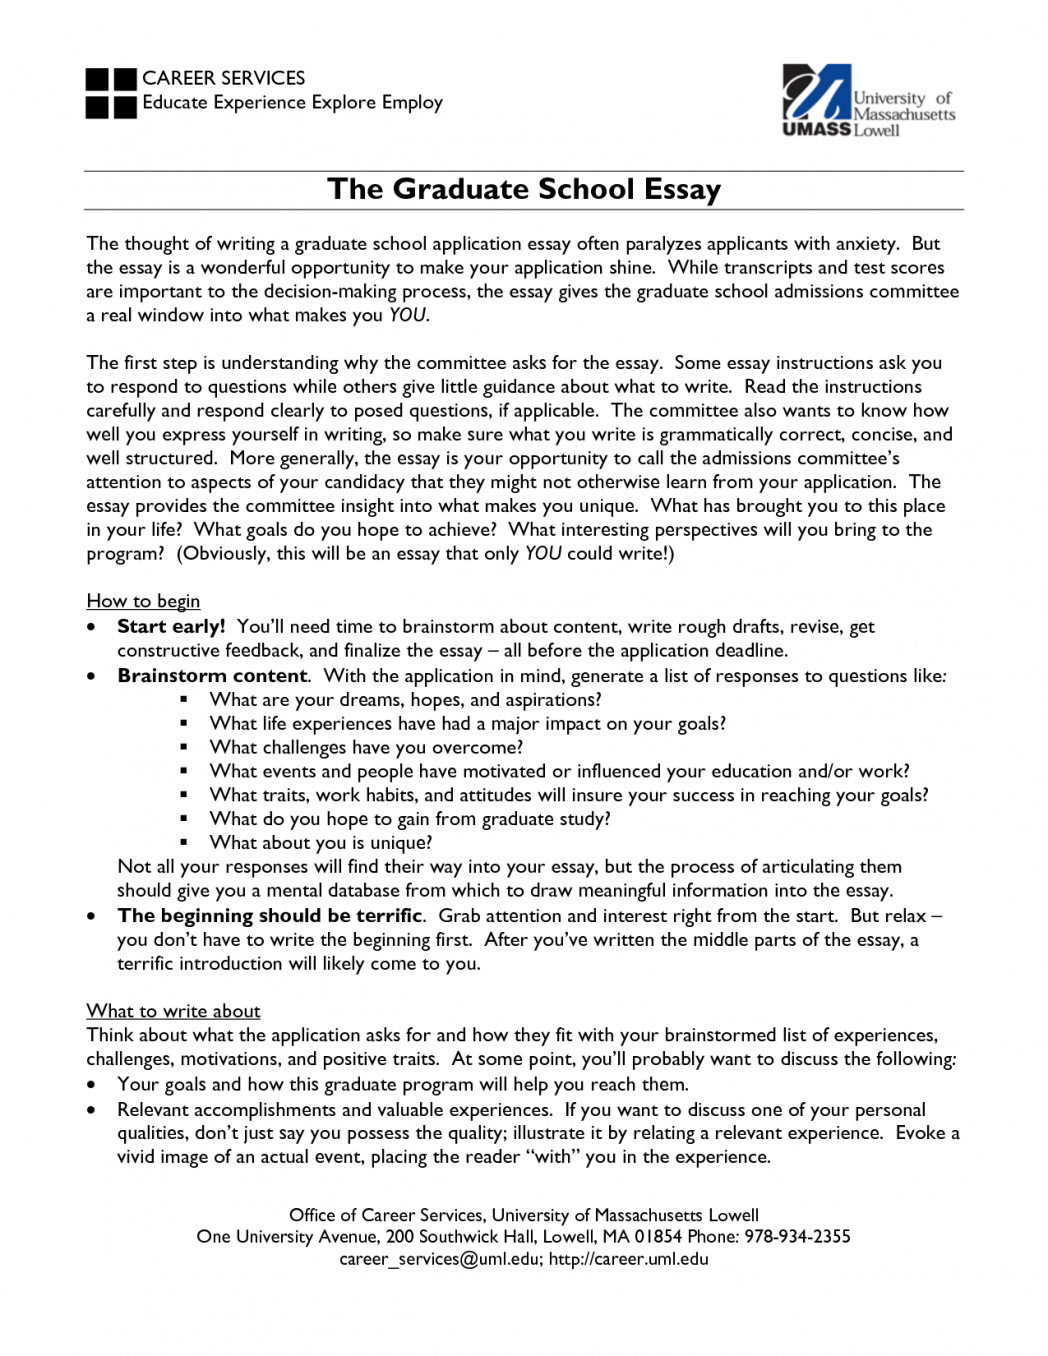 024 Master Essay Sample Masterexcessum Resumes 36nya This I Believe Samples Good Topics Template 1048x1356 Phenomenal Examples Personal College Full